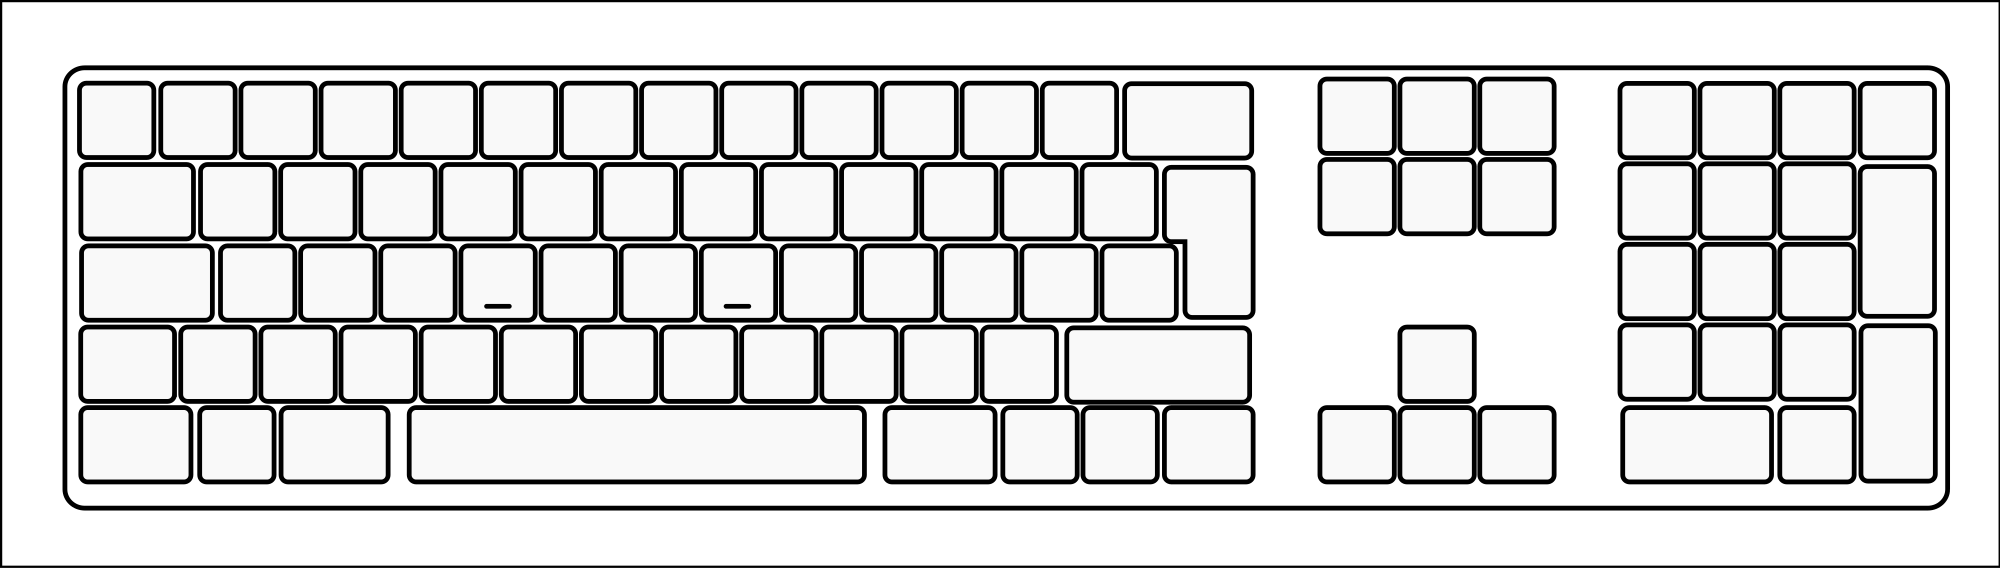 File:Blank-extended-keyboard.svg - Wikimedia Commons